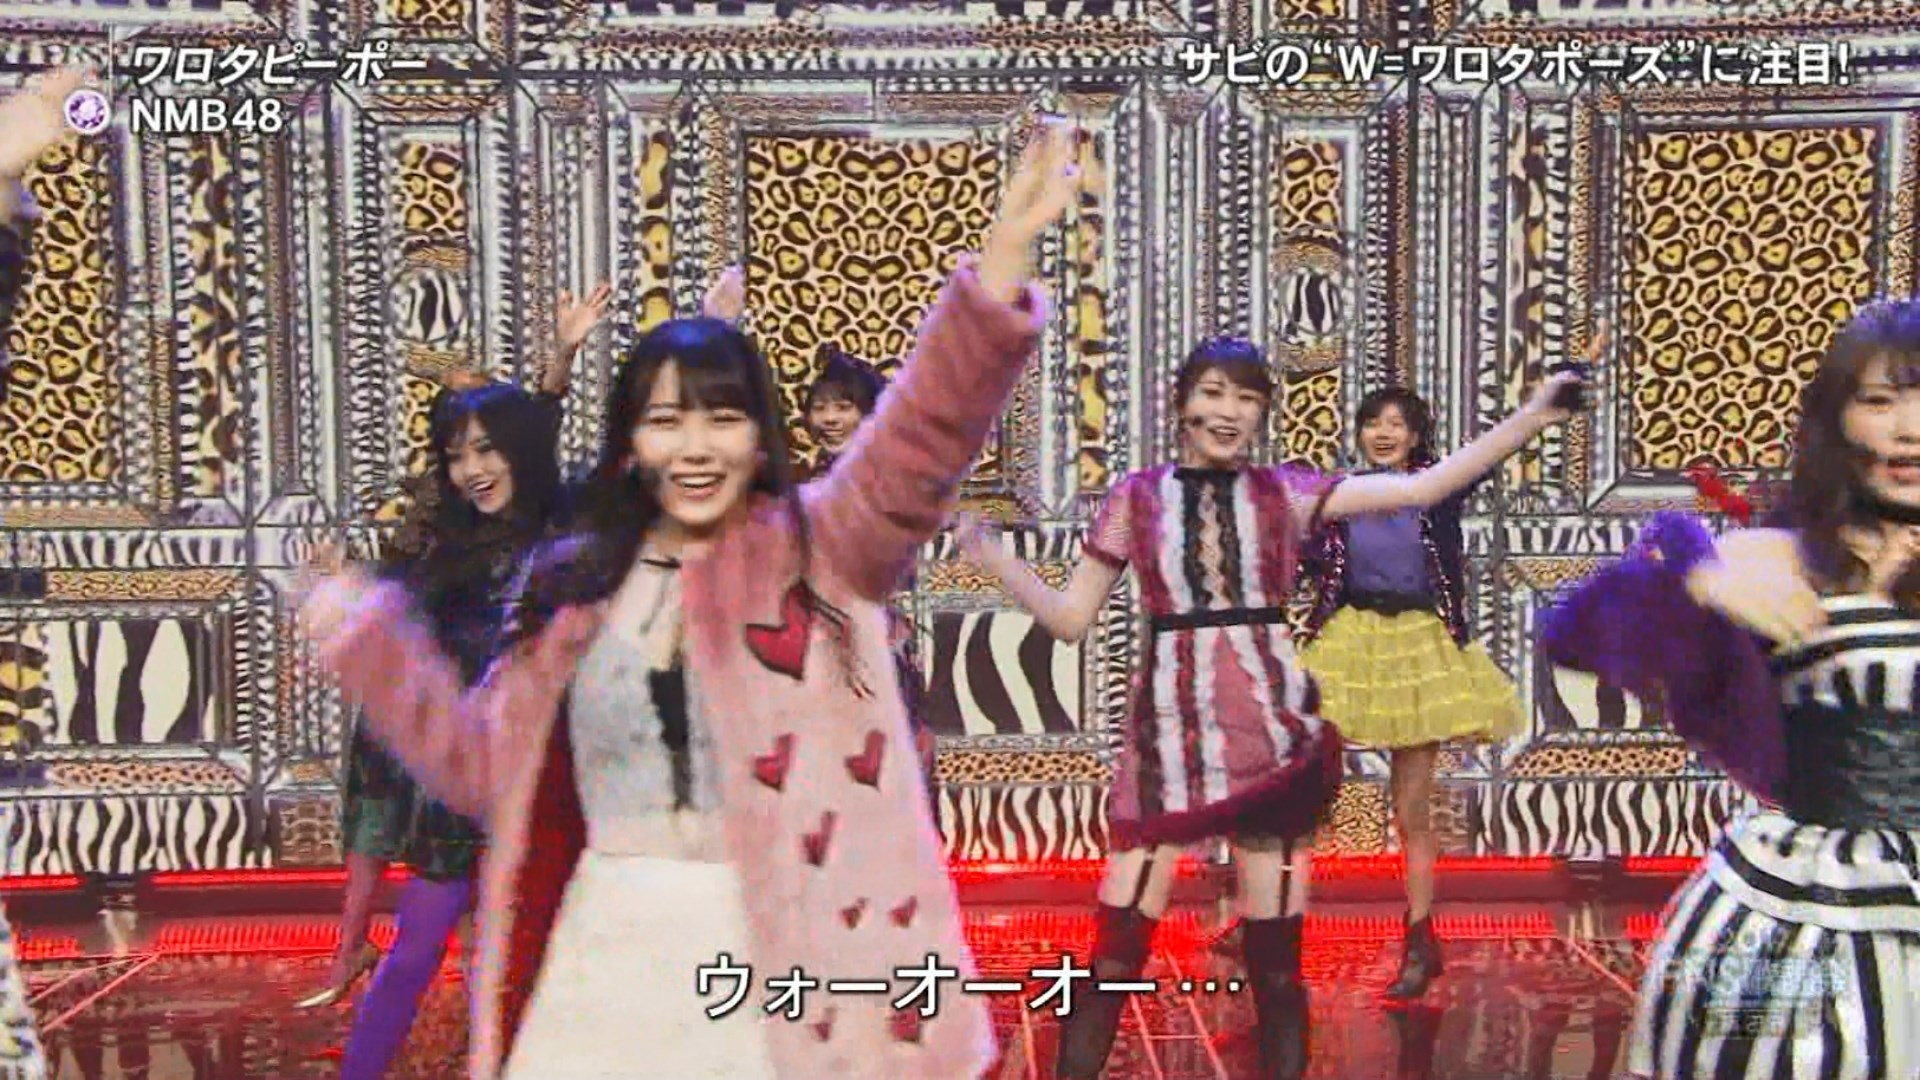 2017FNS歌謡祭第2夜・NMB48ワロタピーポーキャプ-091